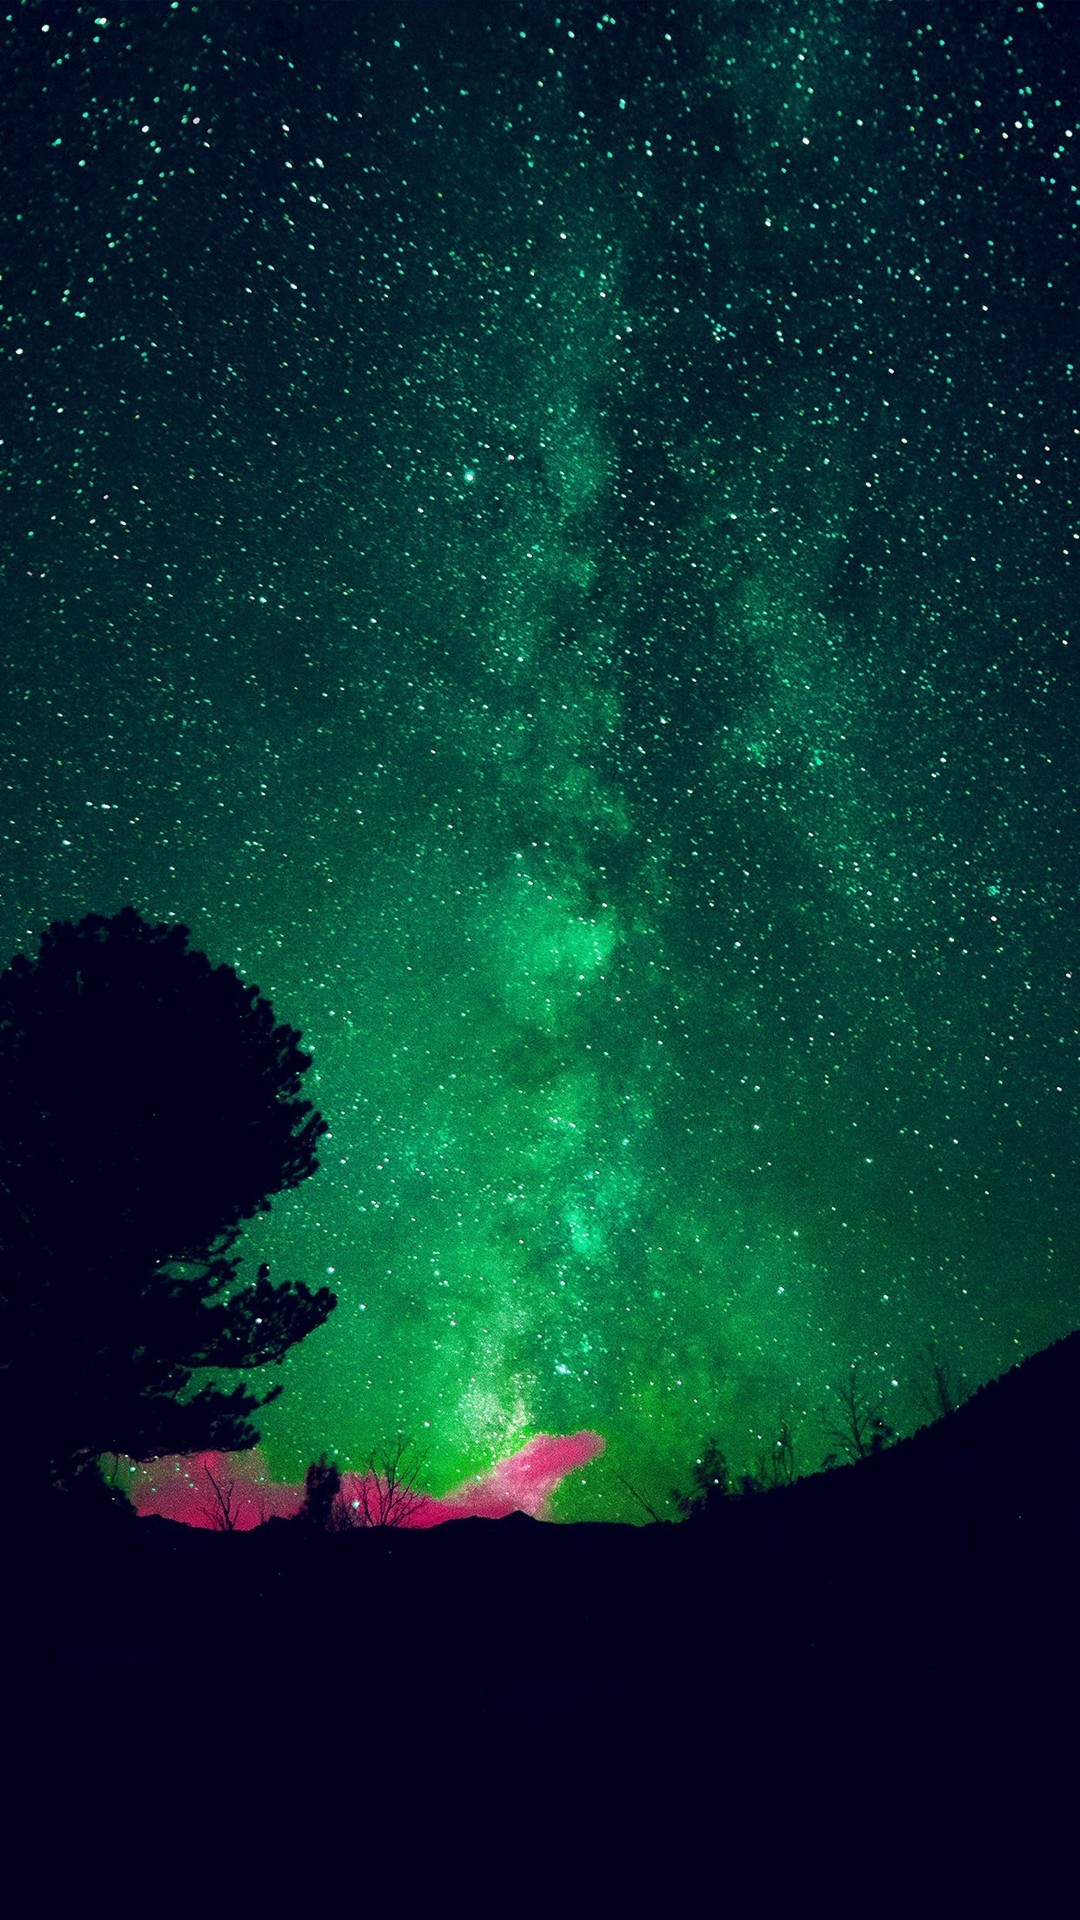 Night Sky iPhone hd wallpaper